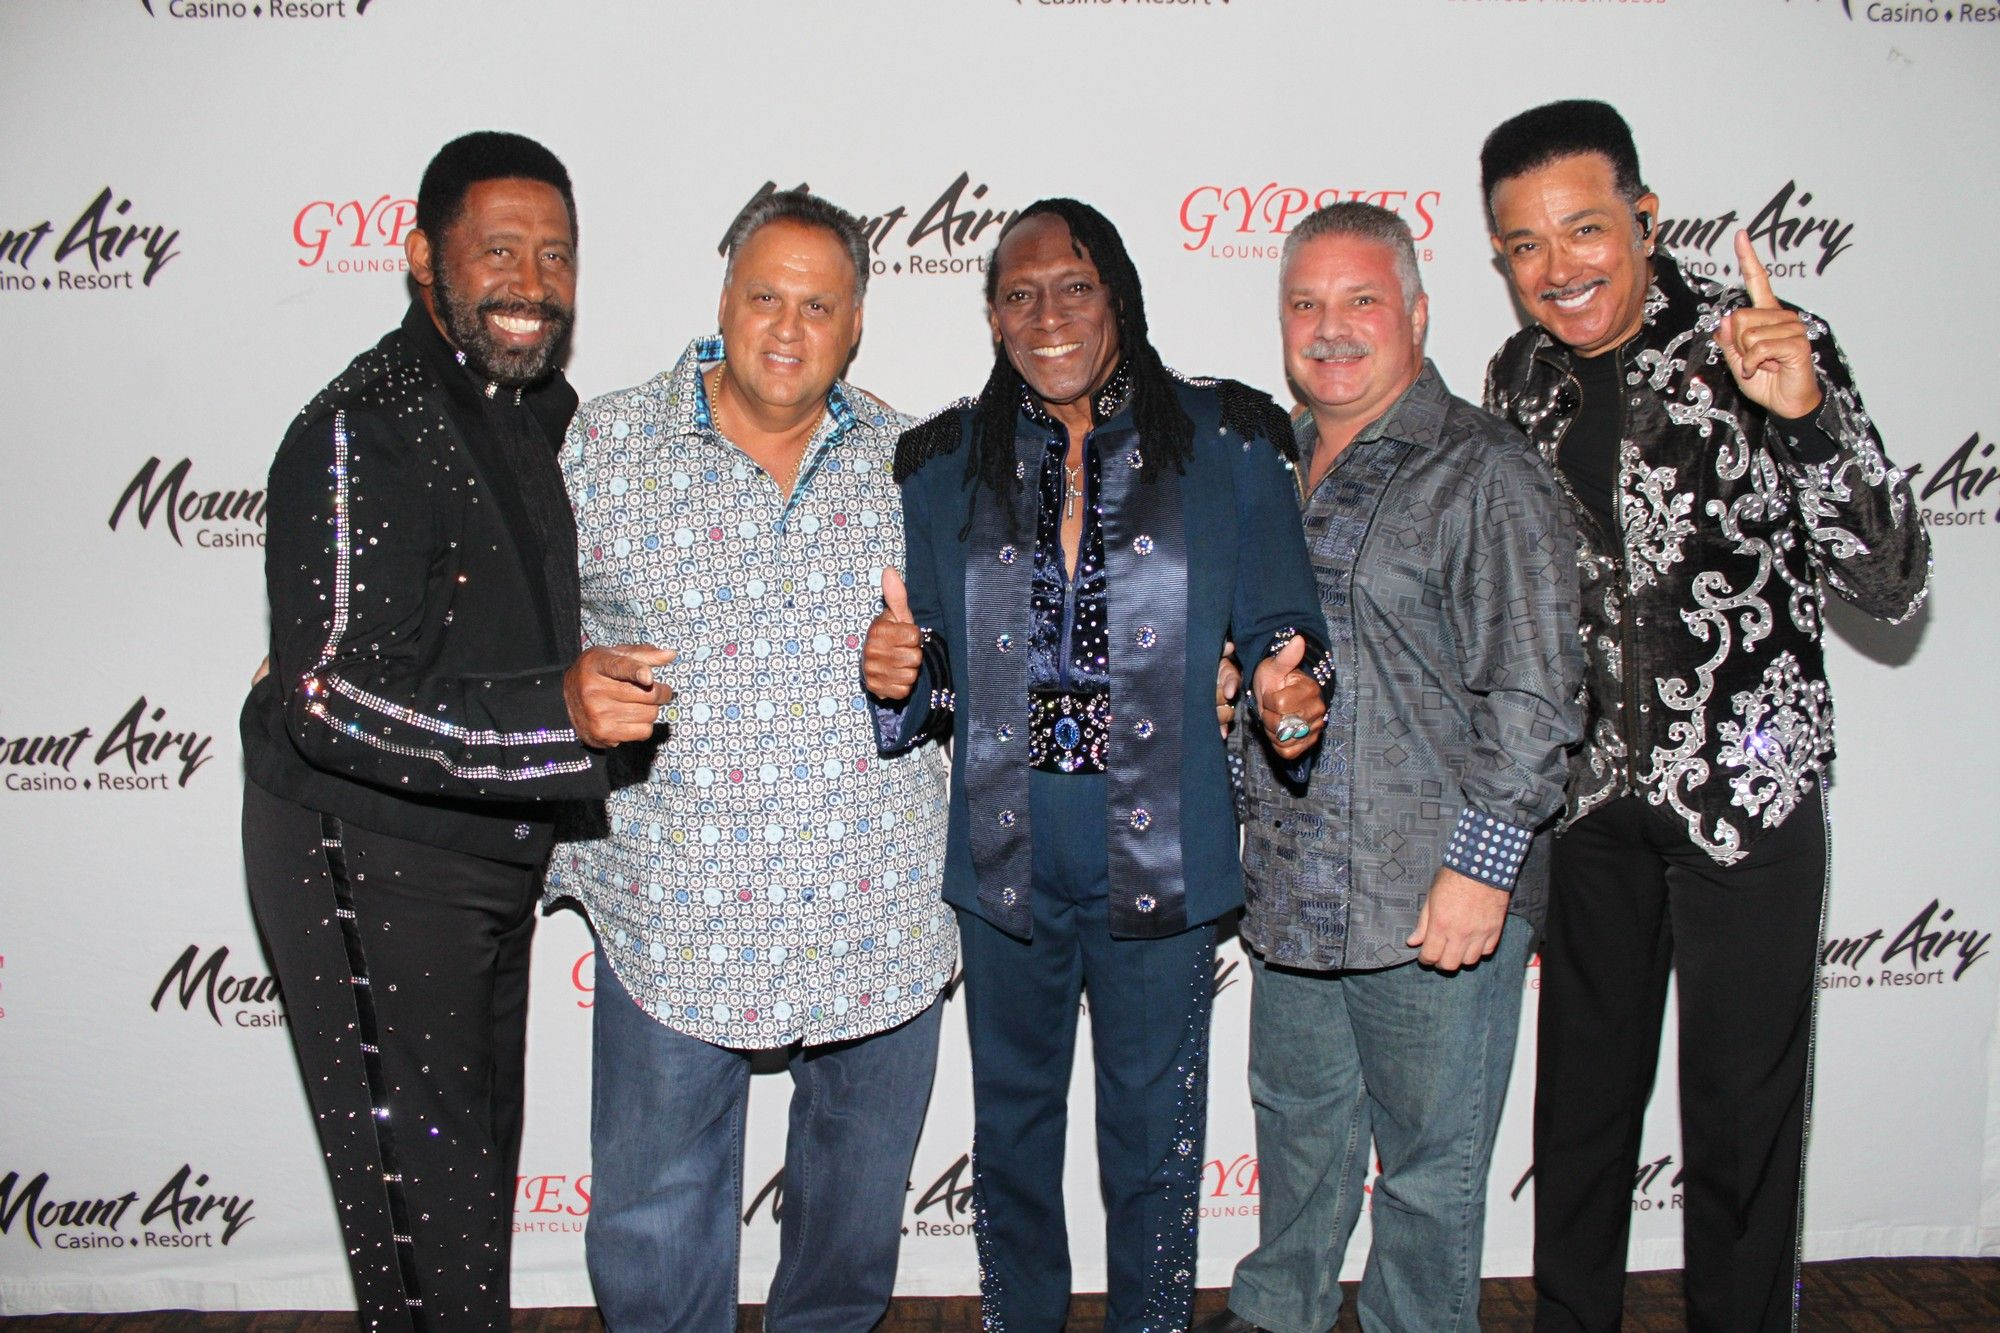 Pin By Mount Airy Casino Resort On The Commodores Meet Greet